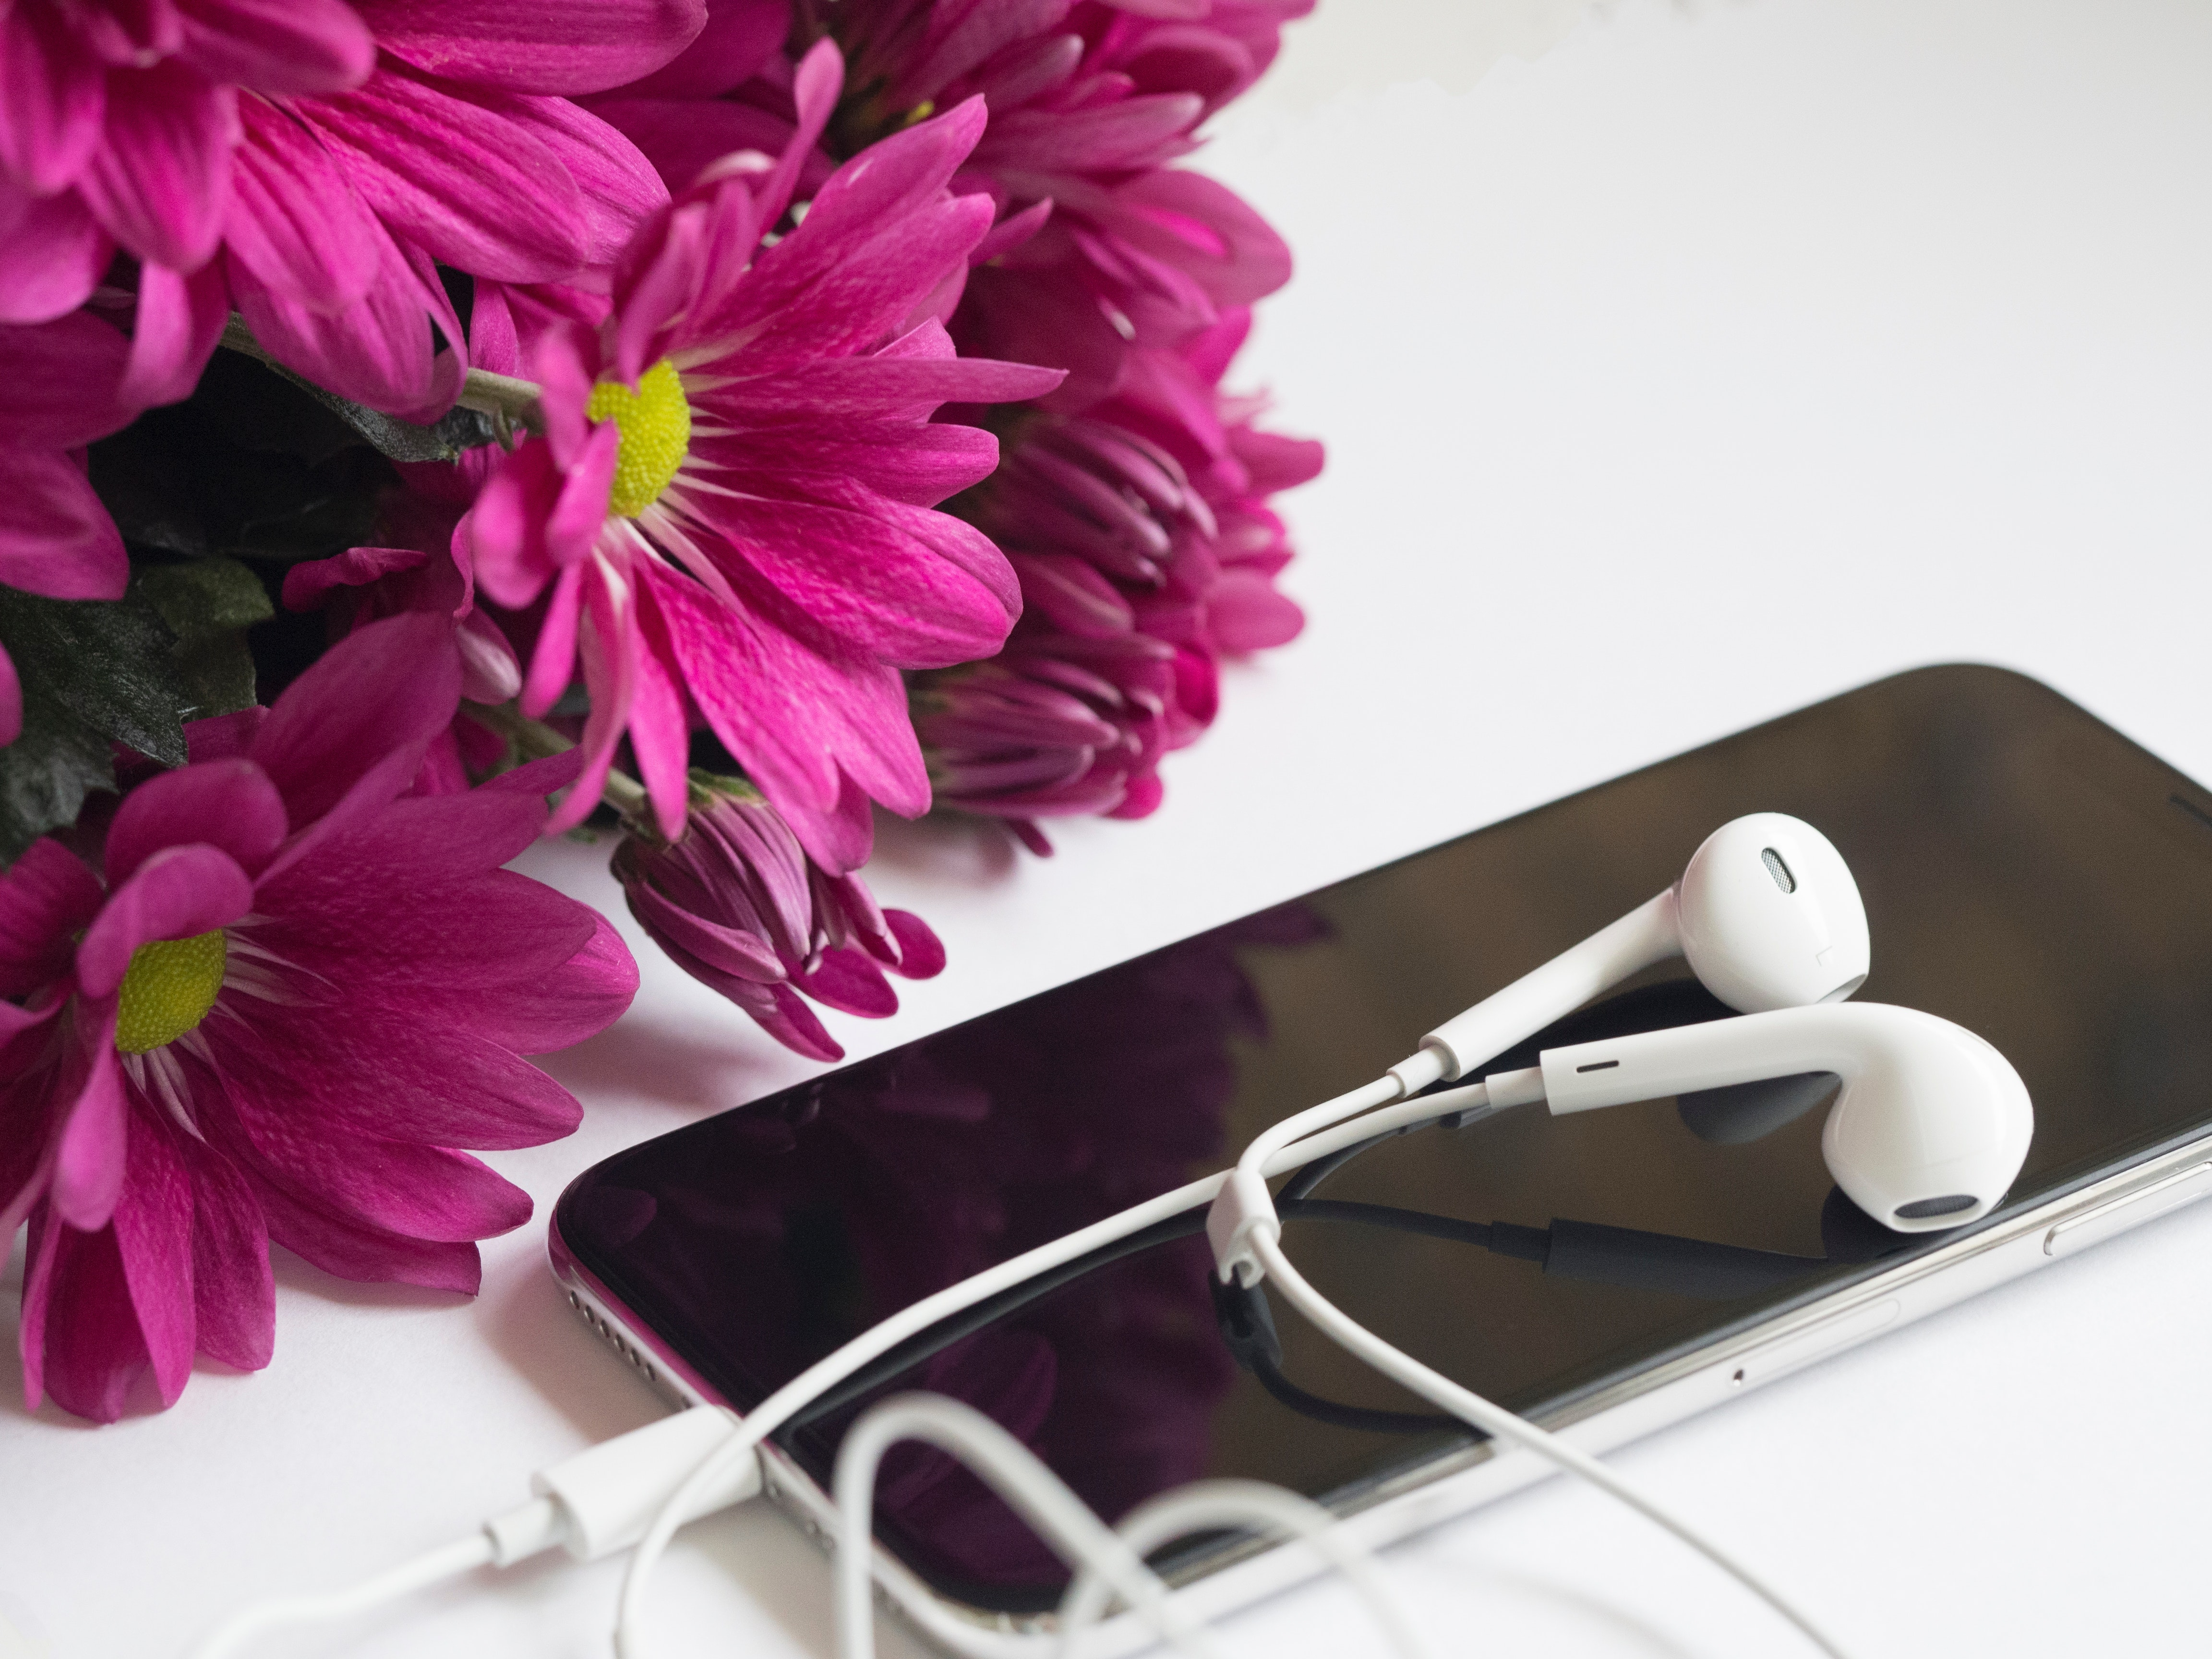 Close-Up Photography of Earphones on Top of Iphone 6 Near Flowers, Modern, Mobile phone, Mobile, Iphone, HQ Photo